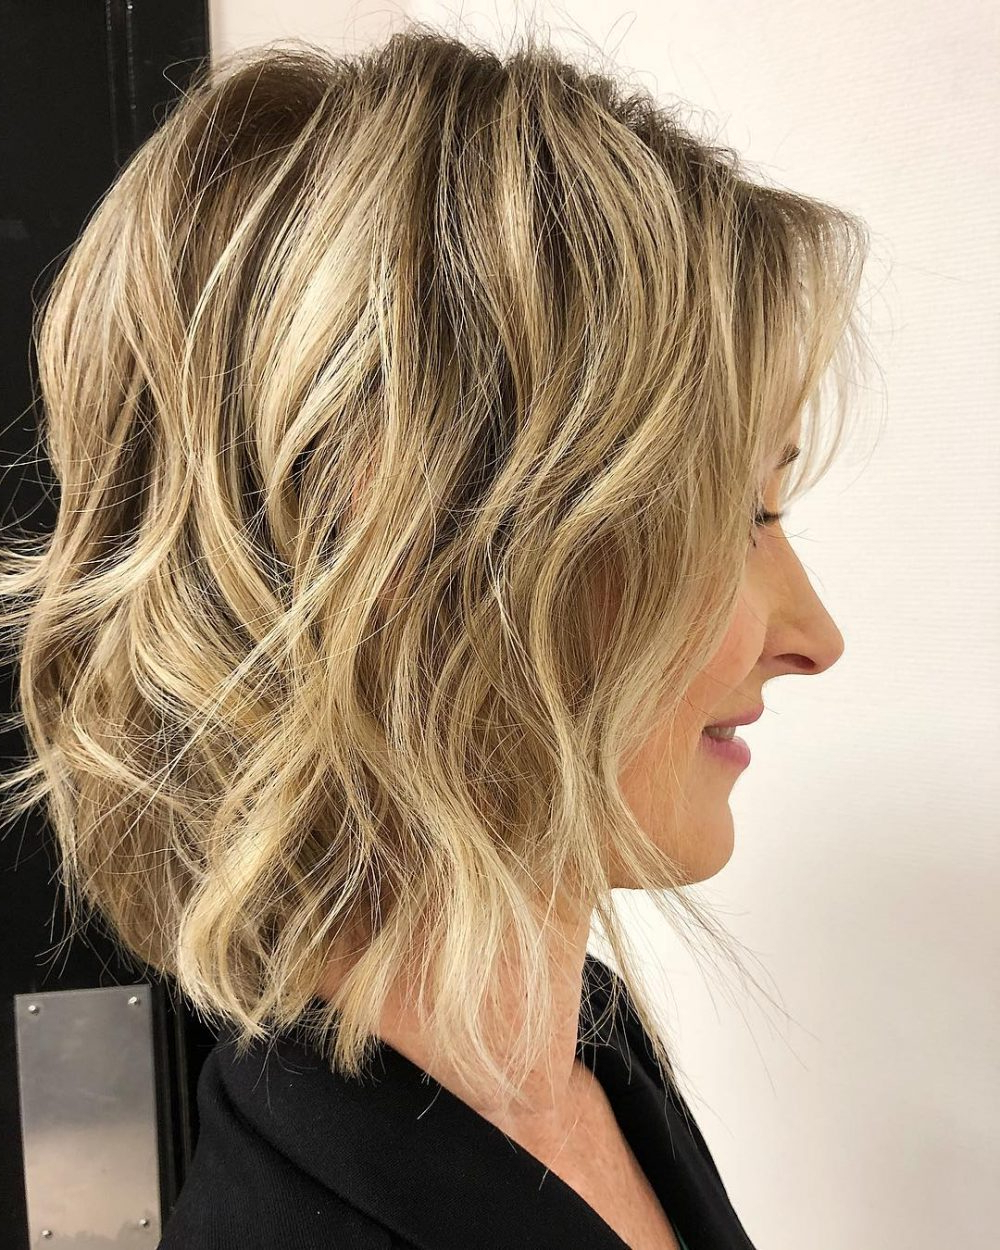 43 Perfect Short Hairstyles For Fine Hair In 2018 Intended For Long Disheveled Pixie Haircuts With Balayage Highlights (View 9 of 20)